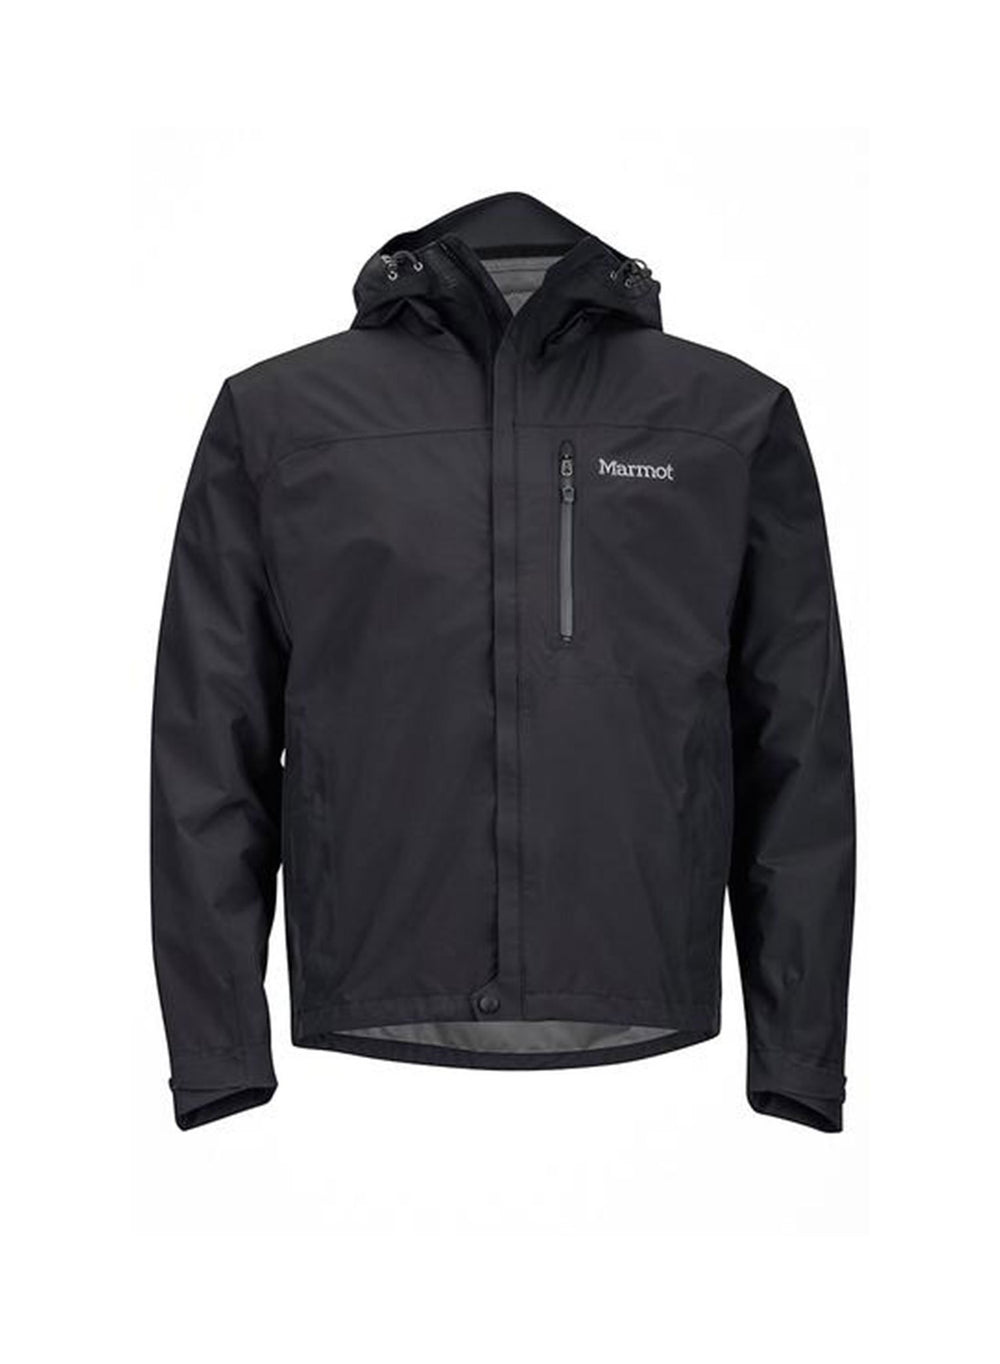 Marmot Minimalist Jacket - Men's Past Season